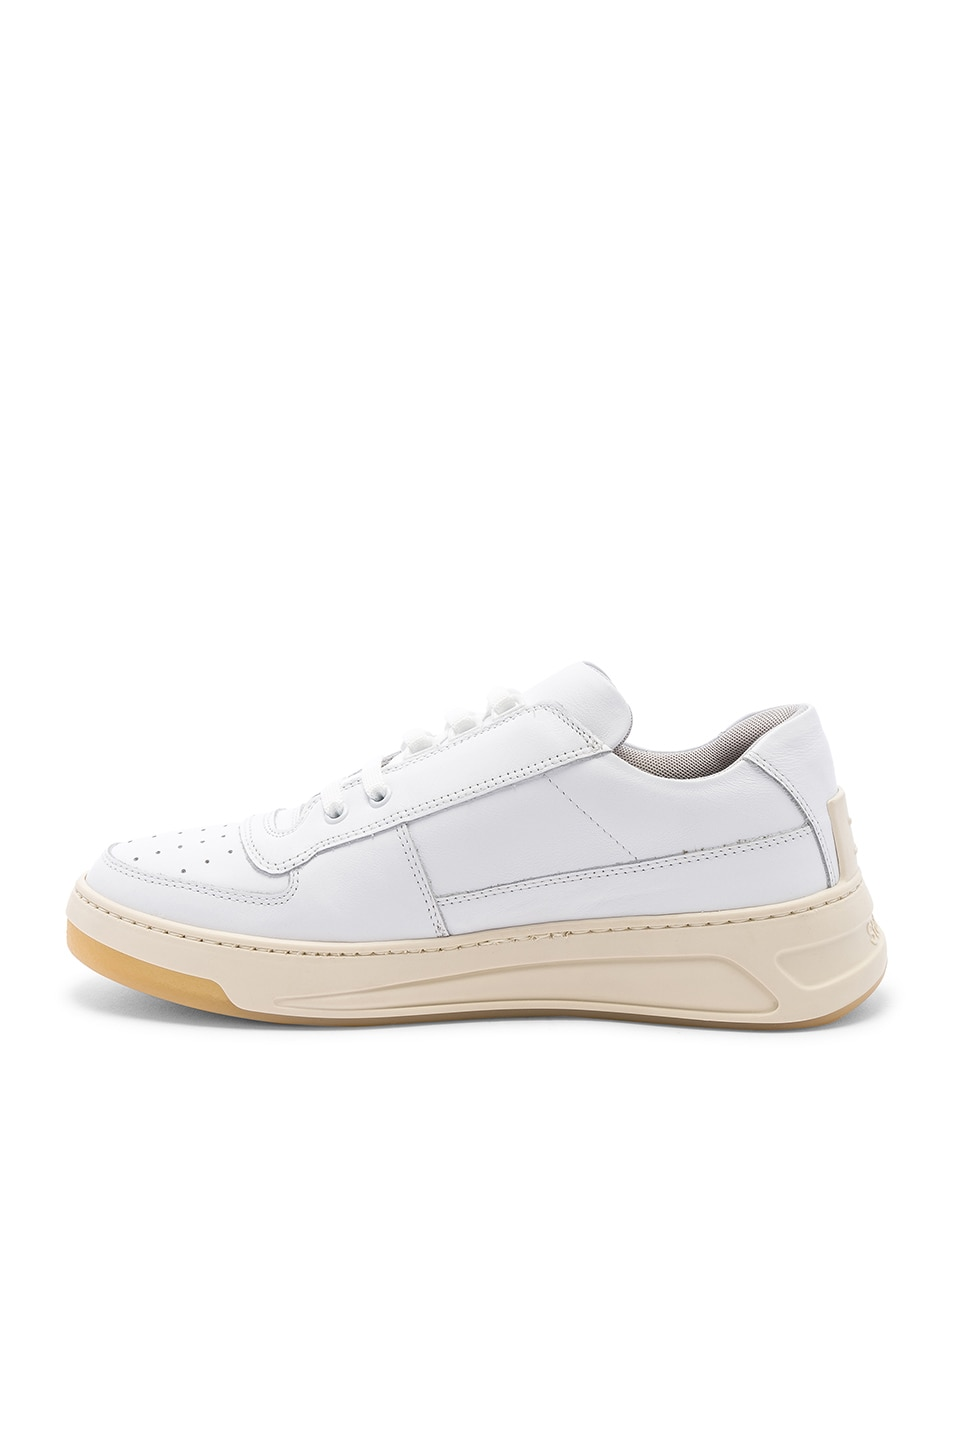 Image 5 of Acne Studios Perey Lace Up Sneakers in White & White